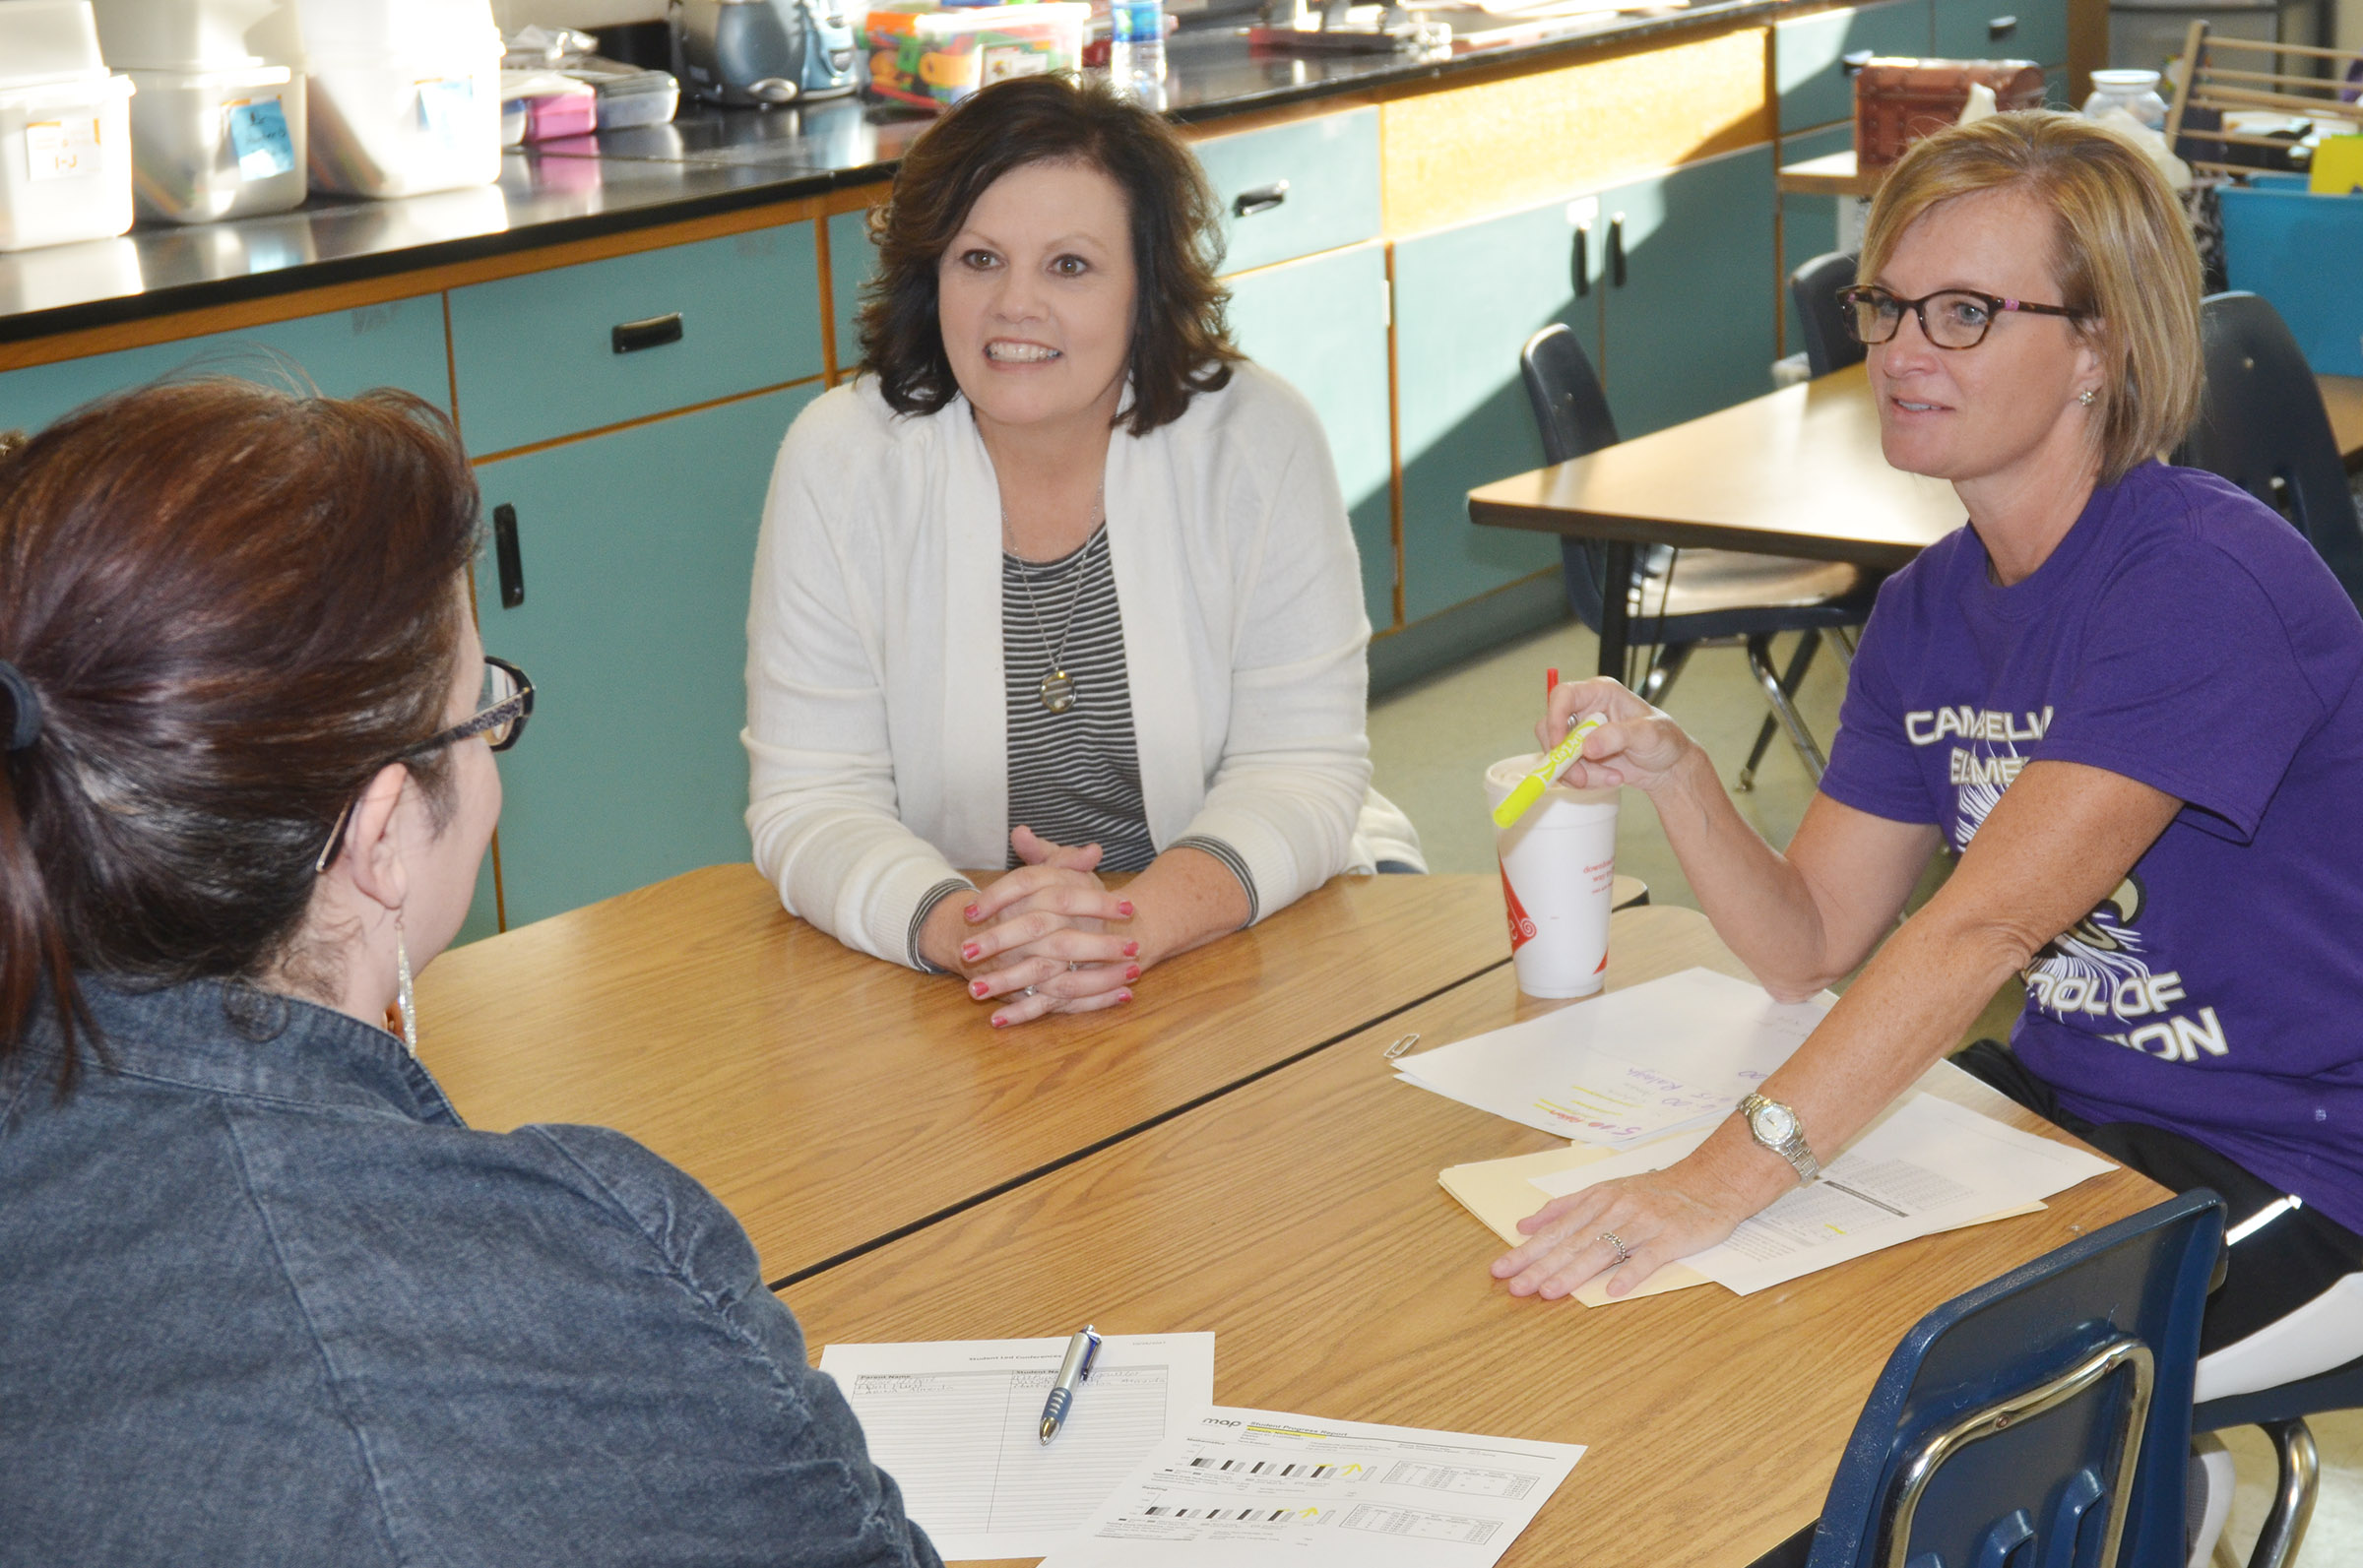 Former CES second-grade teacher Melanie Cox, at right, and Lisa Kearney, who is now teaching Cox's class, talk with a parent.